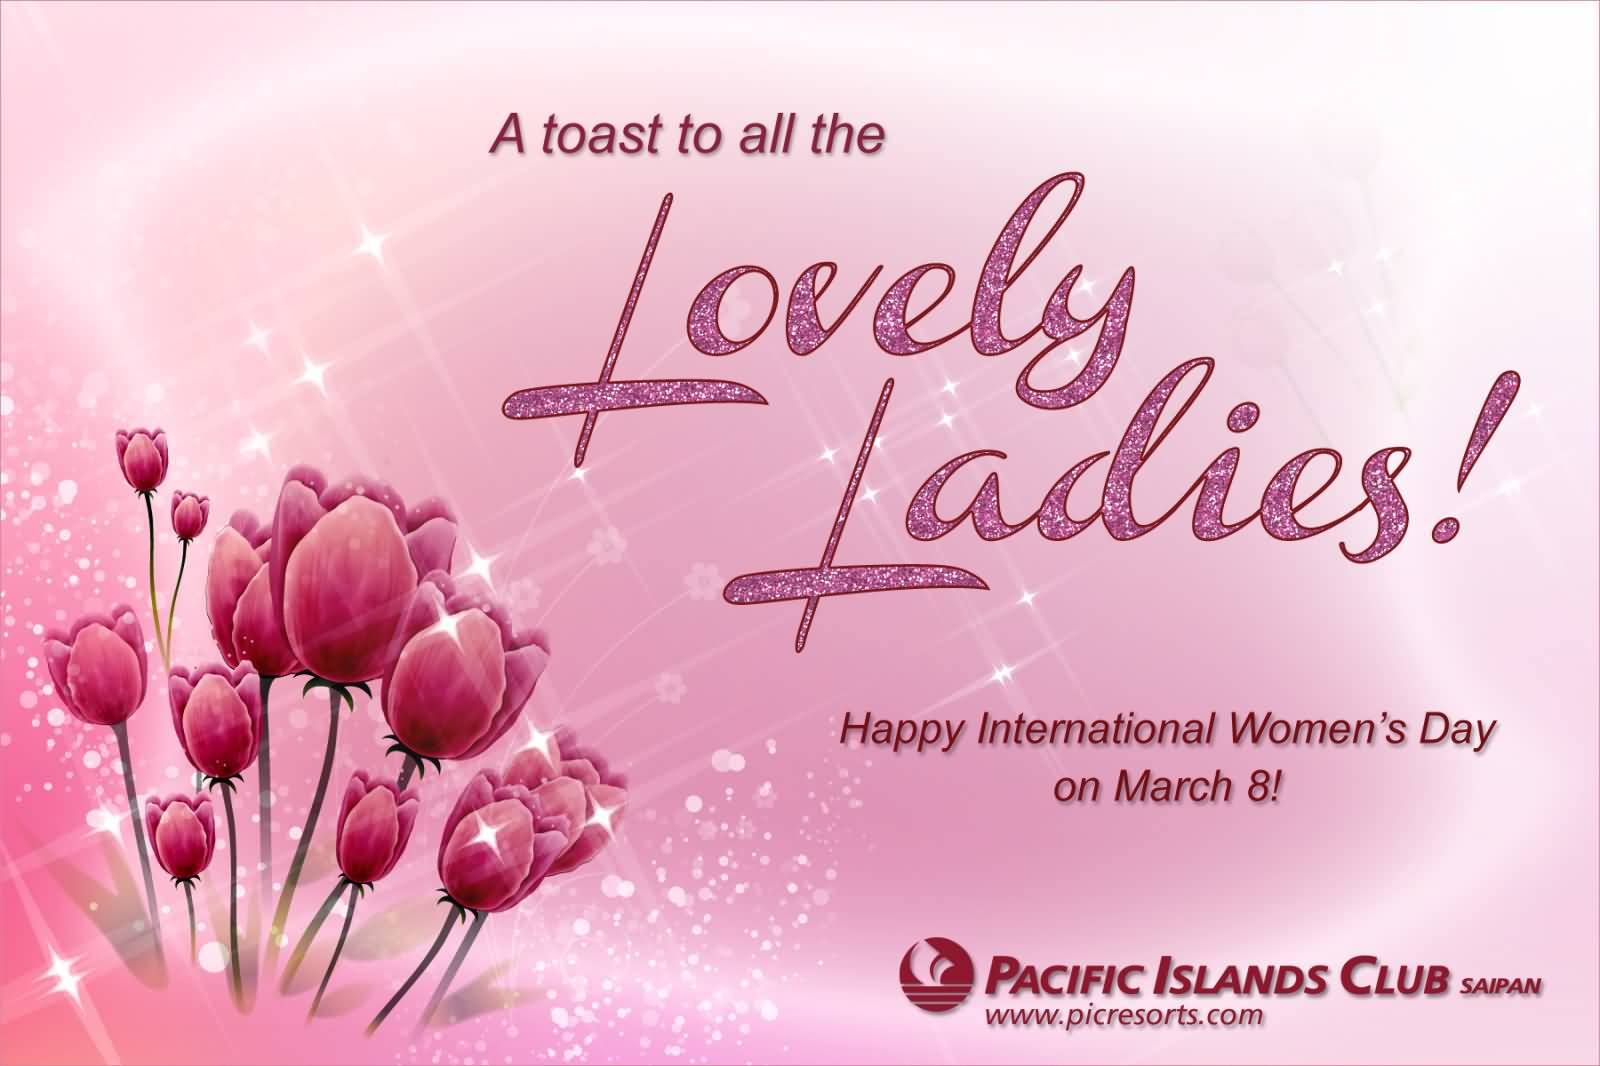 A toast to all the lovely ladies happy international womens day a toast to all the lovely ladies happy international womens day on march 8 greeting card kristyandbryce Image collections